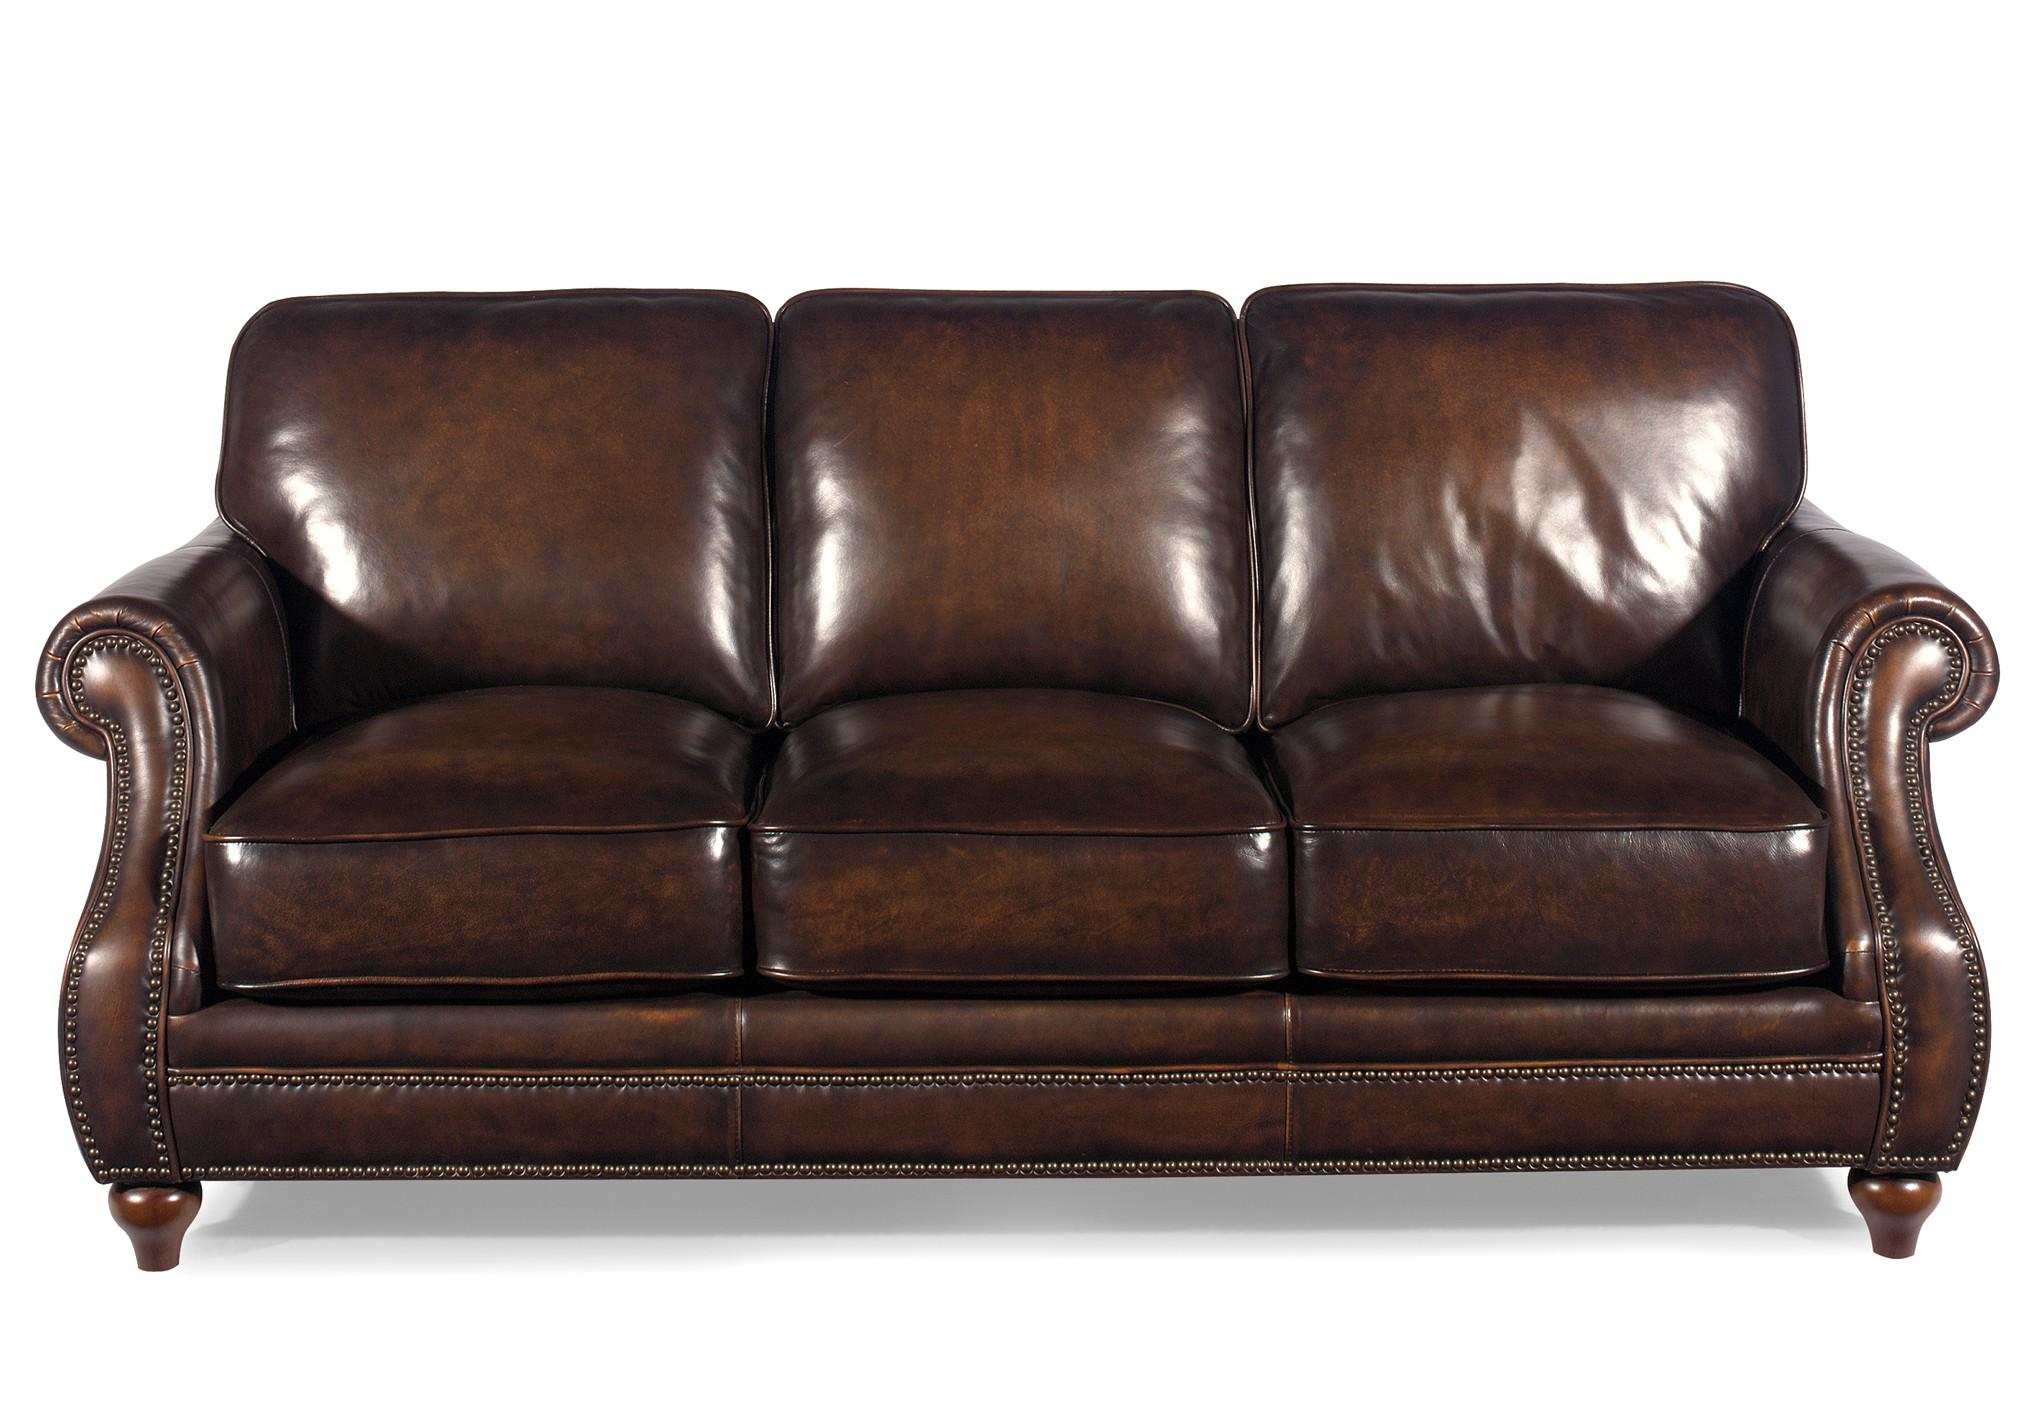 Traditional Leather Sofa With Rolled Arms And Nailhead